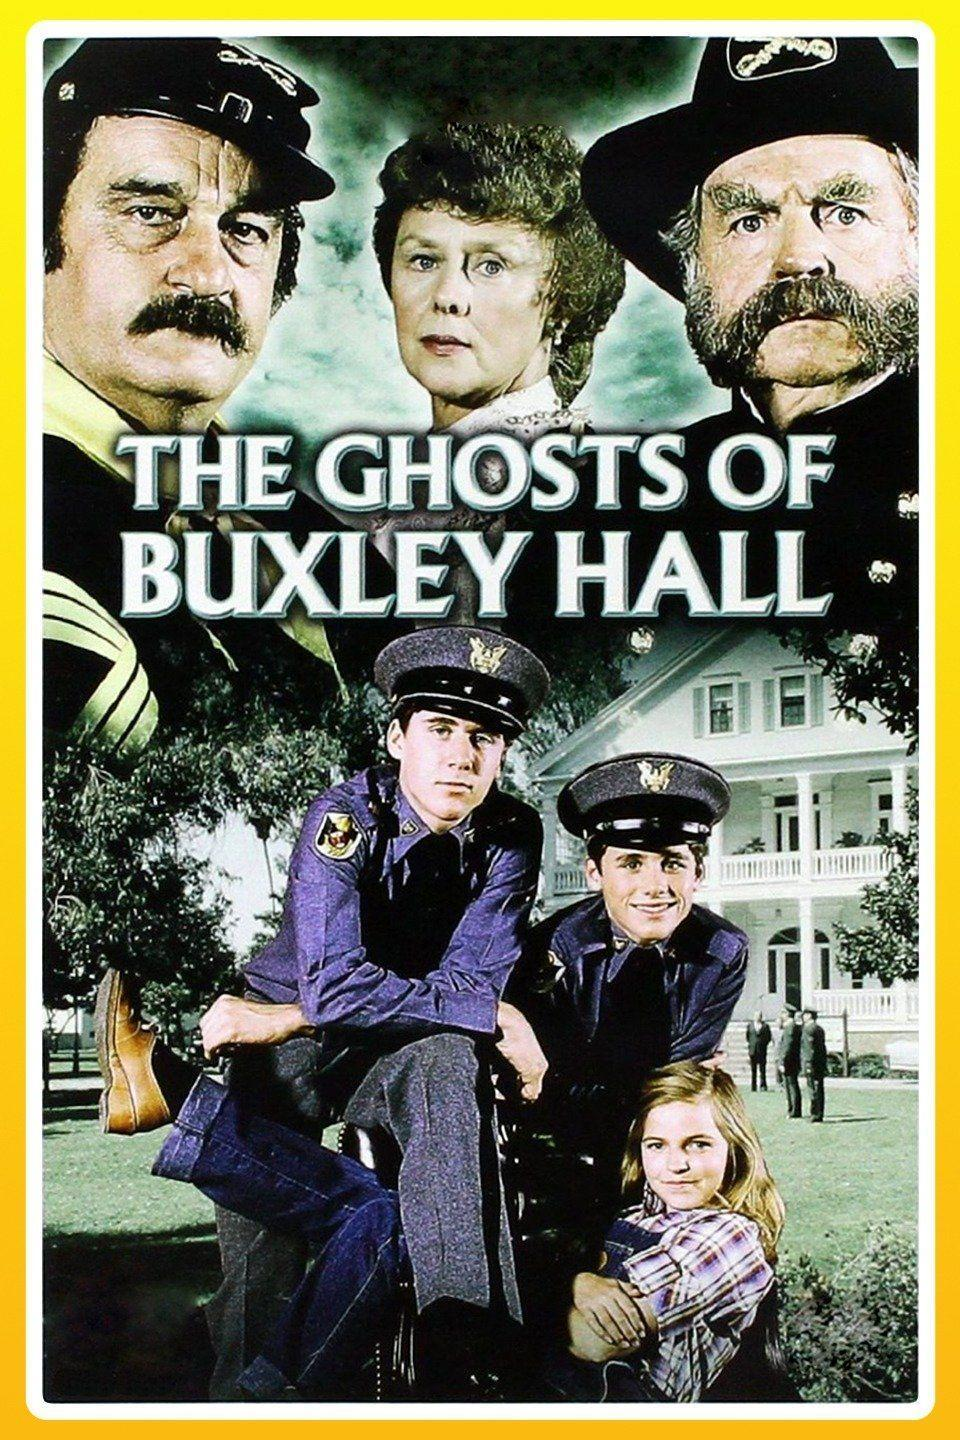 """<p>In this 1980 flick, Buxley Hall, a century-old school for boys, is forced to share the campus with girls when they find themselves in financial trouble. The ghosts of Buxley Hall launch a spirited counterattack when they discover who the real enemy is.</p><p><a class=""""link rapid-noclick-resp"""" href=""""https://go.redirectingat.com?id=74968X1596630&url=https%3A%2F%2Fwww.disneyplus.com%2Fmovies%2Fthe-ghosts-of-buxley-hall%2F5iLI3dbOpSjZ&sref=https%3A%2F%2Fwww.countryliving.com%2Flife%2Fentertainment%2Fg32748070%2Fdisney-plus-halloween-movies%2F"""" rel=""""nofollow noopener"""" target=""""_blank"""" data-ylk=""""slk:WATCH NOW"""">WATCH NOW</a></p>"""